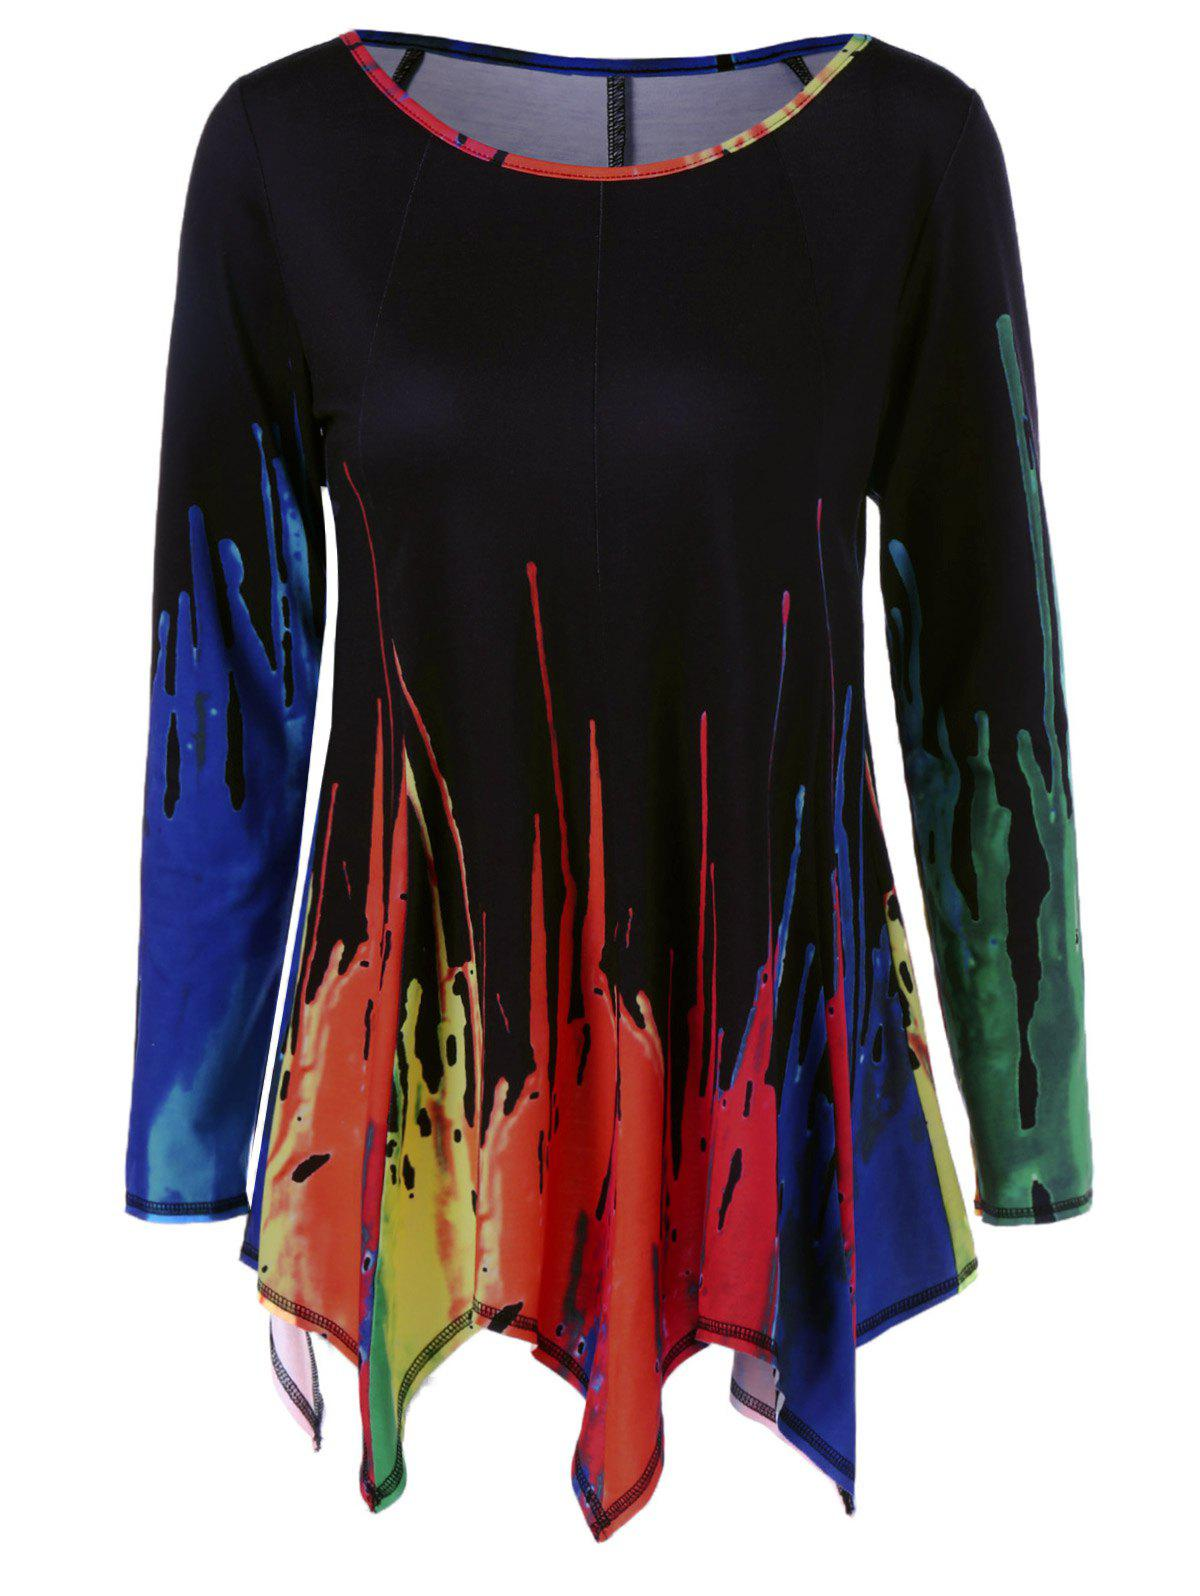 Splatter Paint Handkerchief Tunic T-Shirt - COLORMIX 2XL